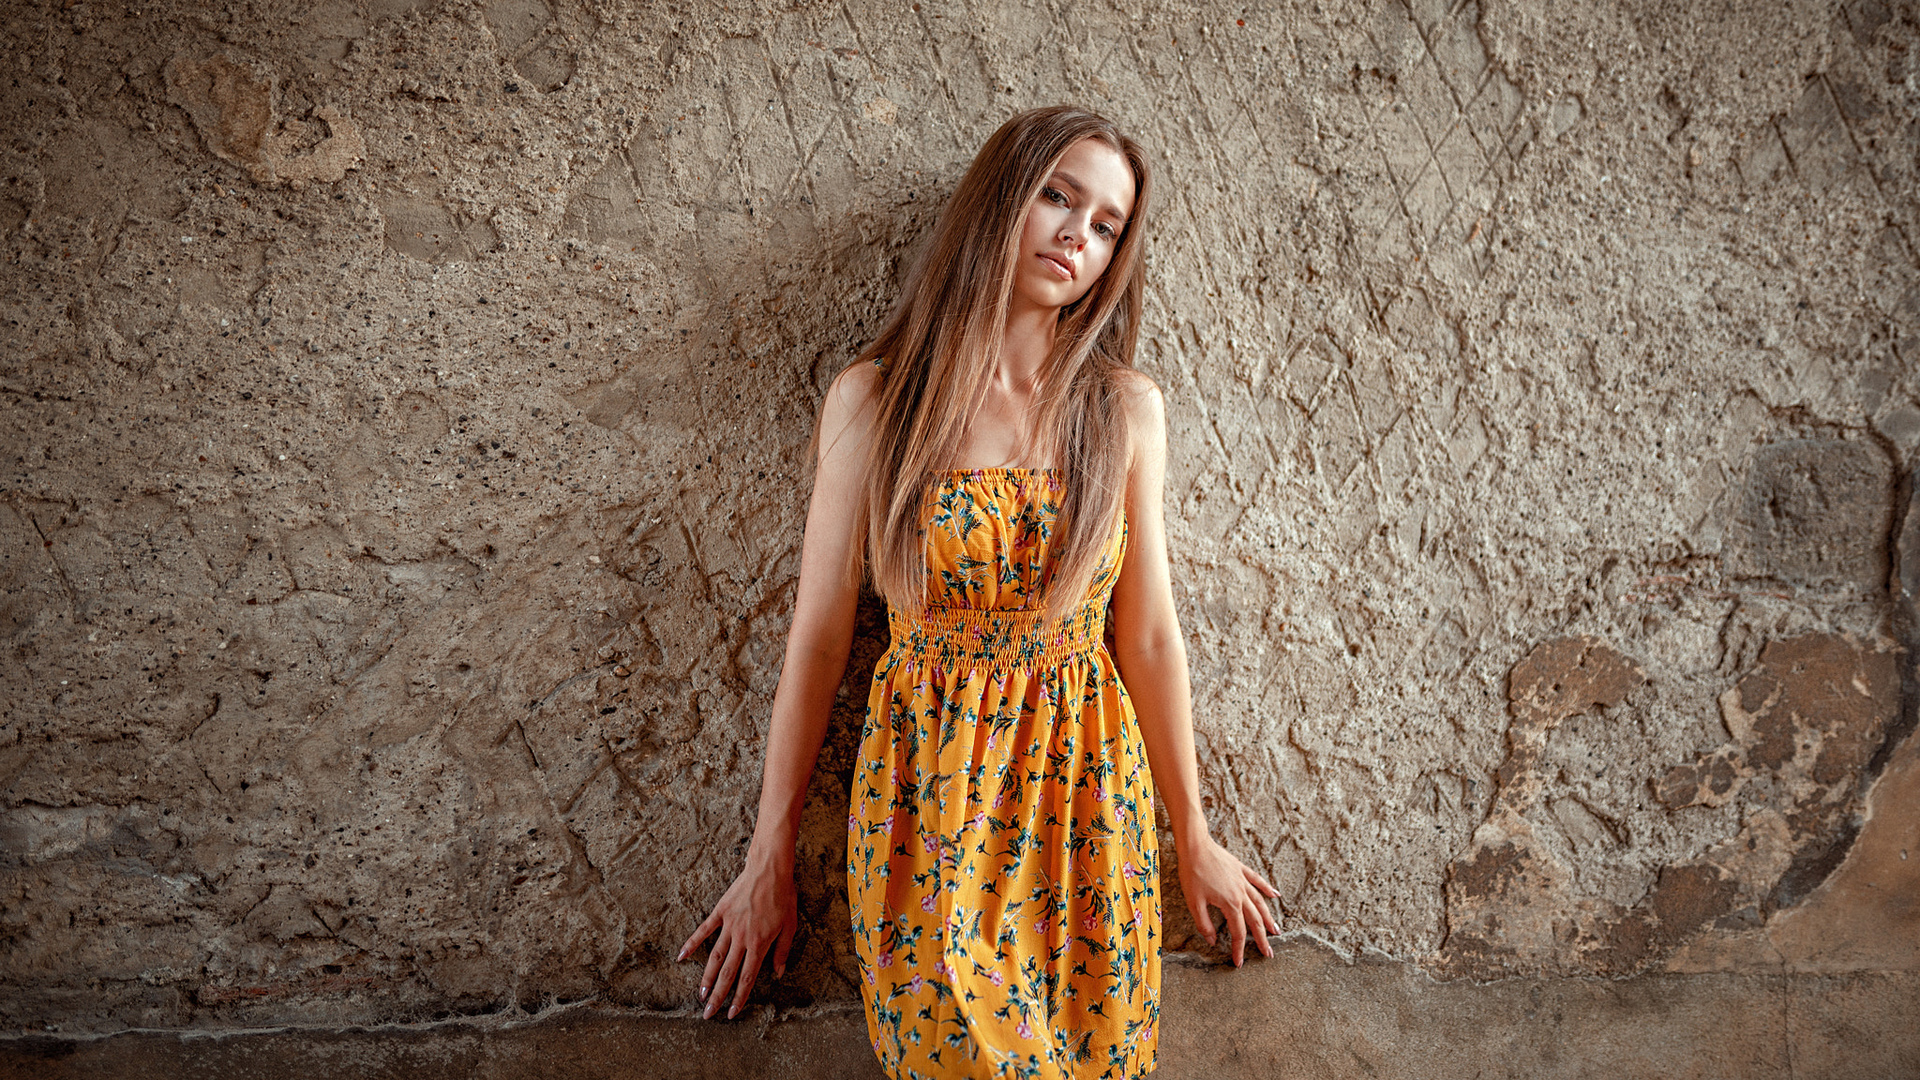 women, portrait, dress, blonde, wall, yellow dress